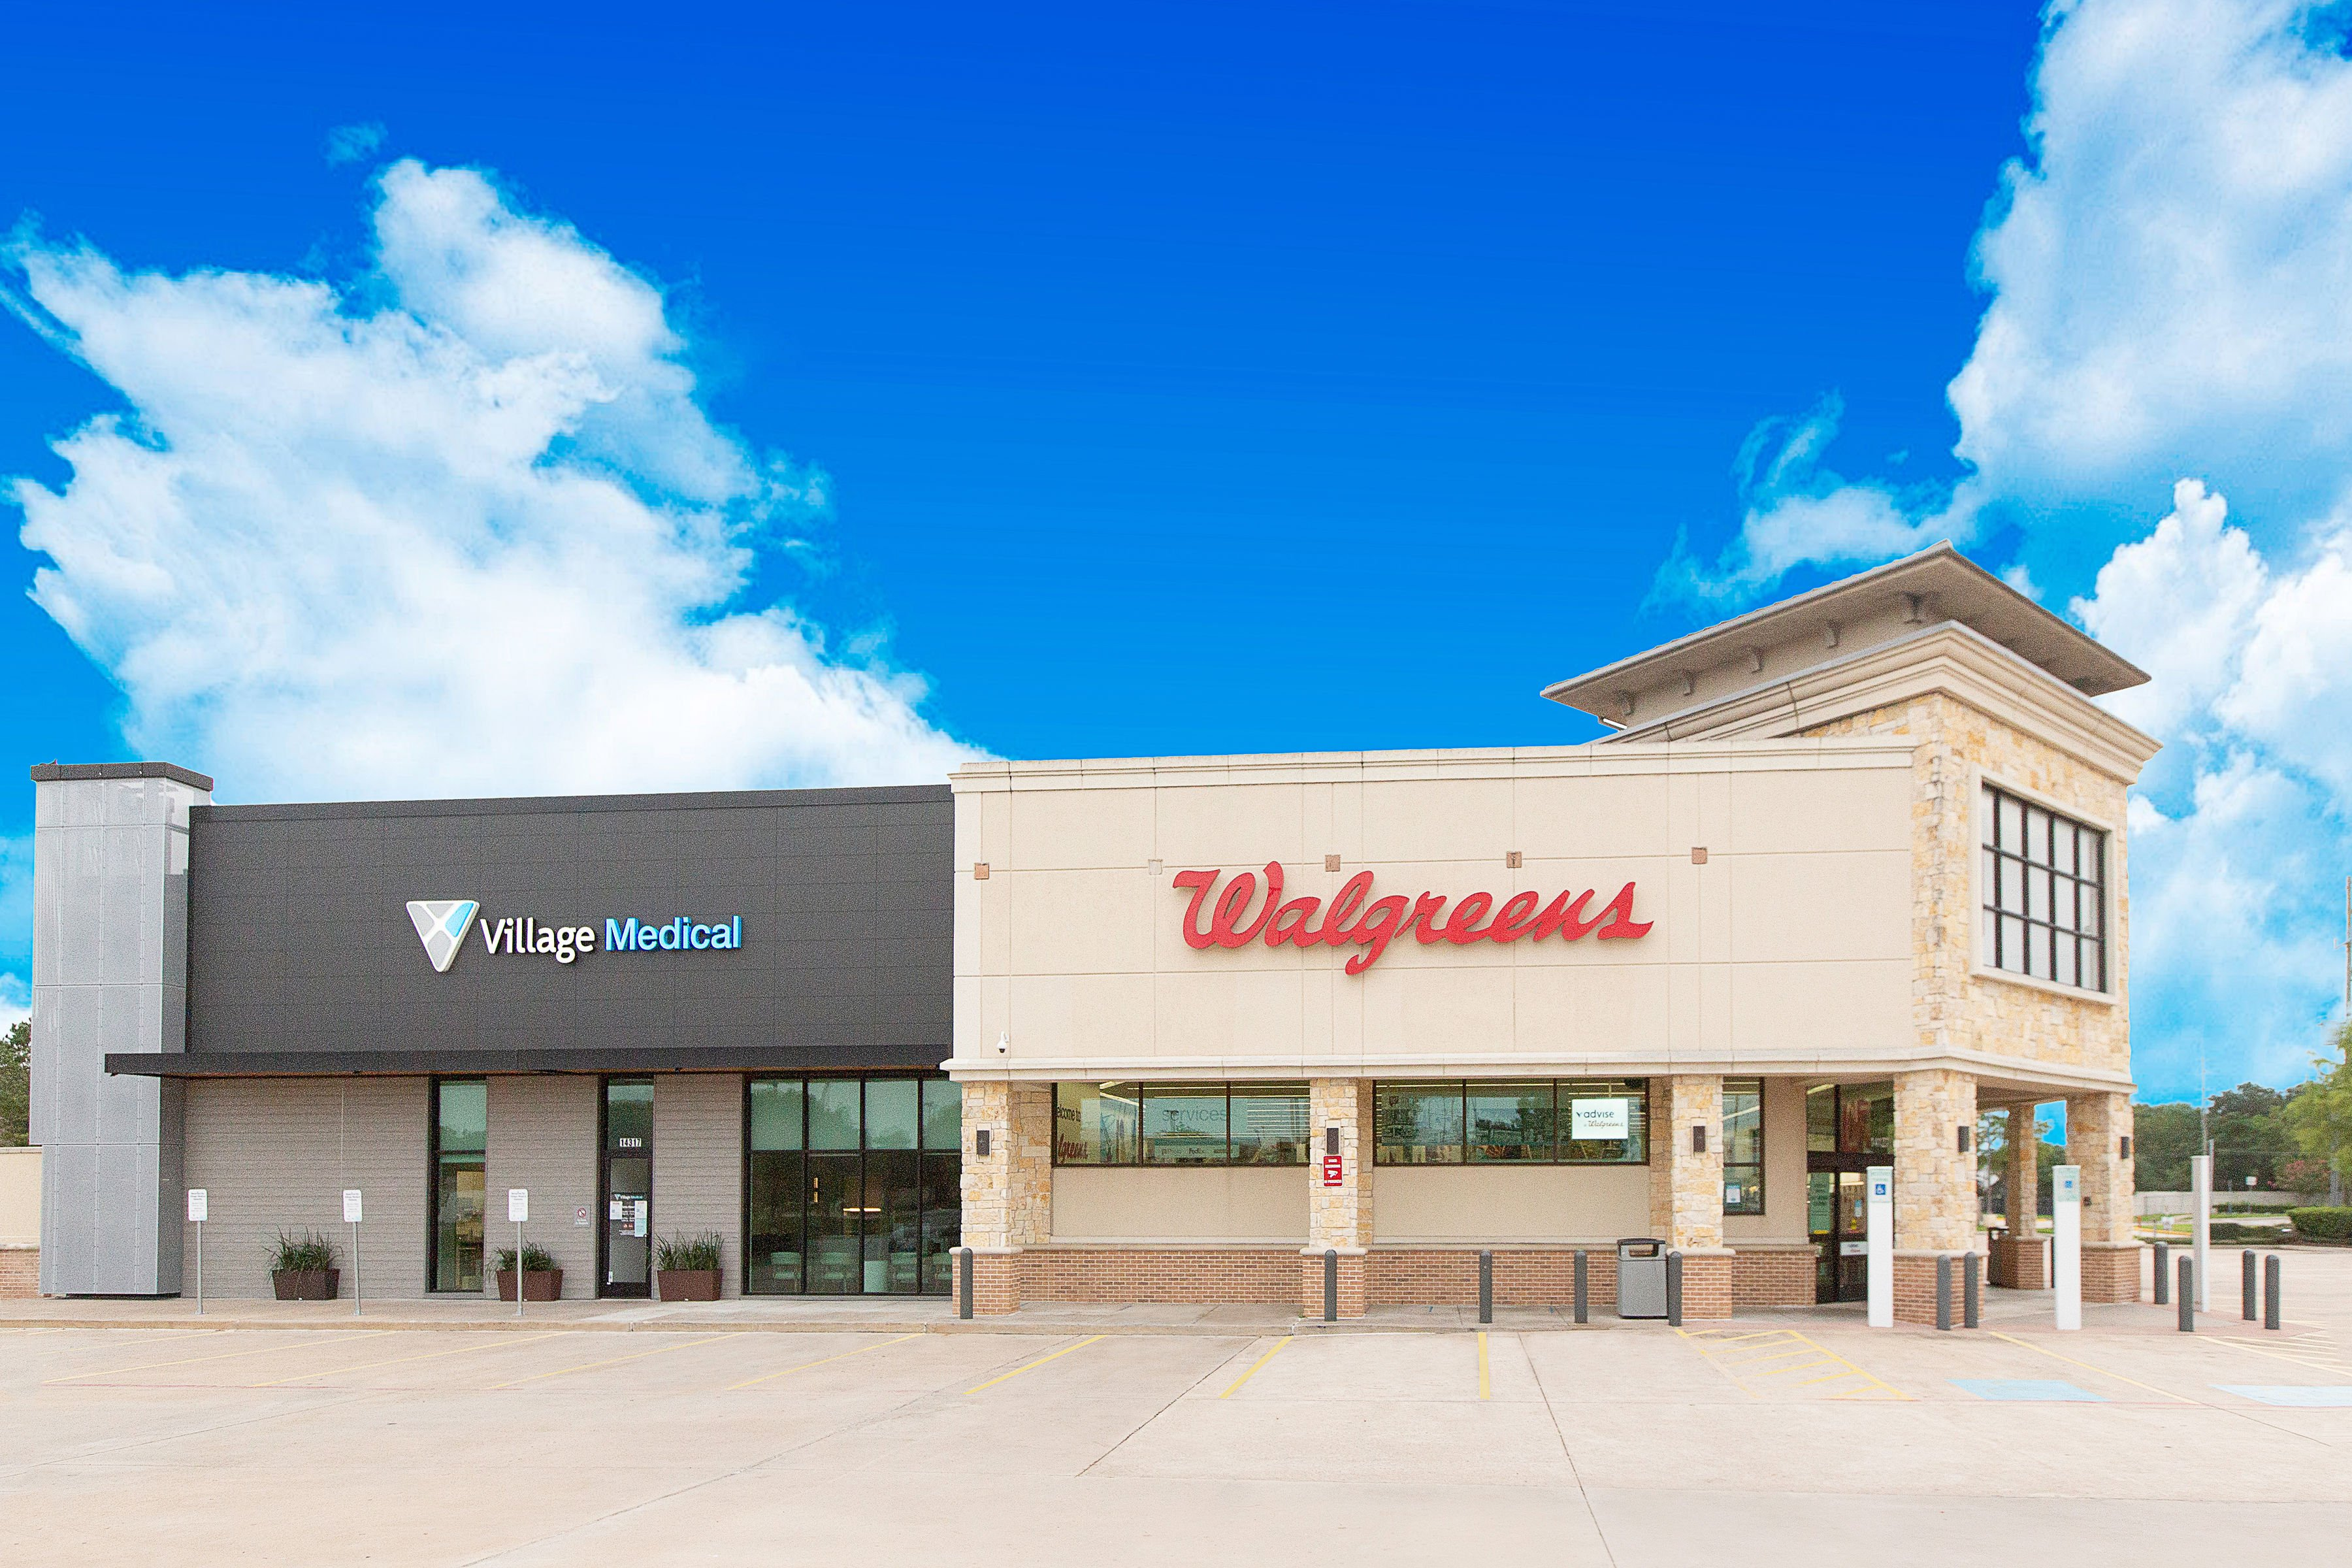 Walgreens plans to open up to 700 primary care clinics as part of ...